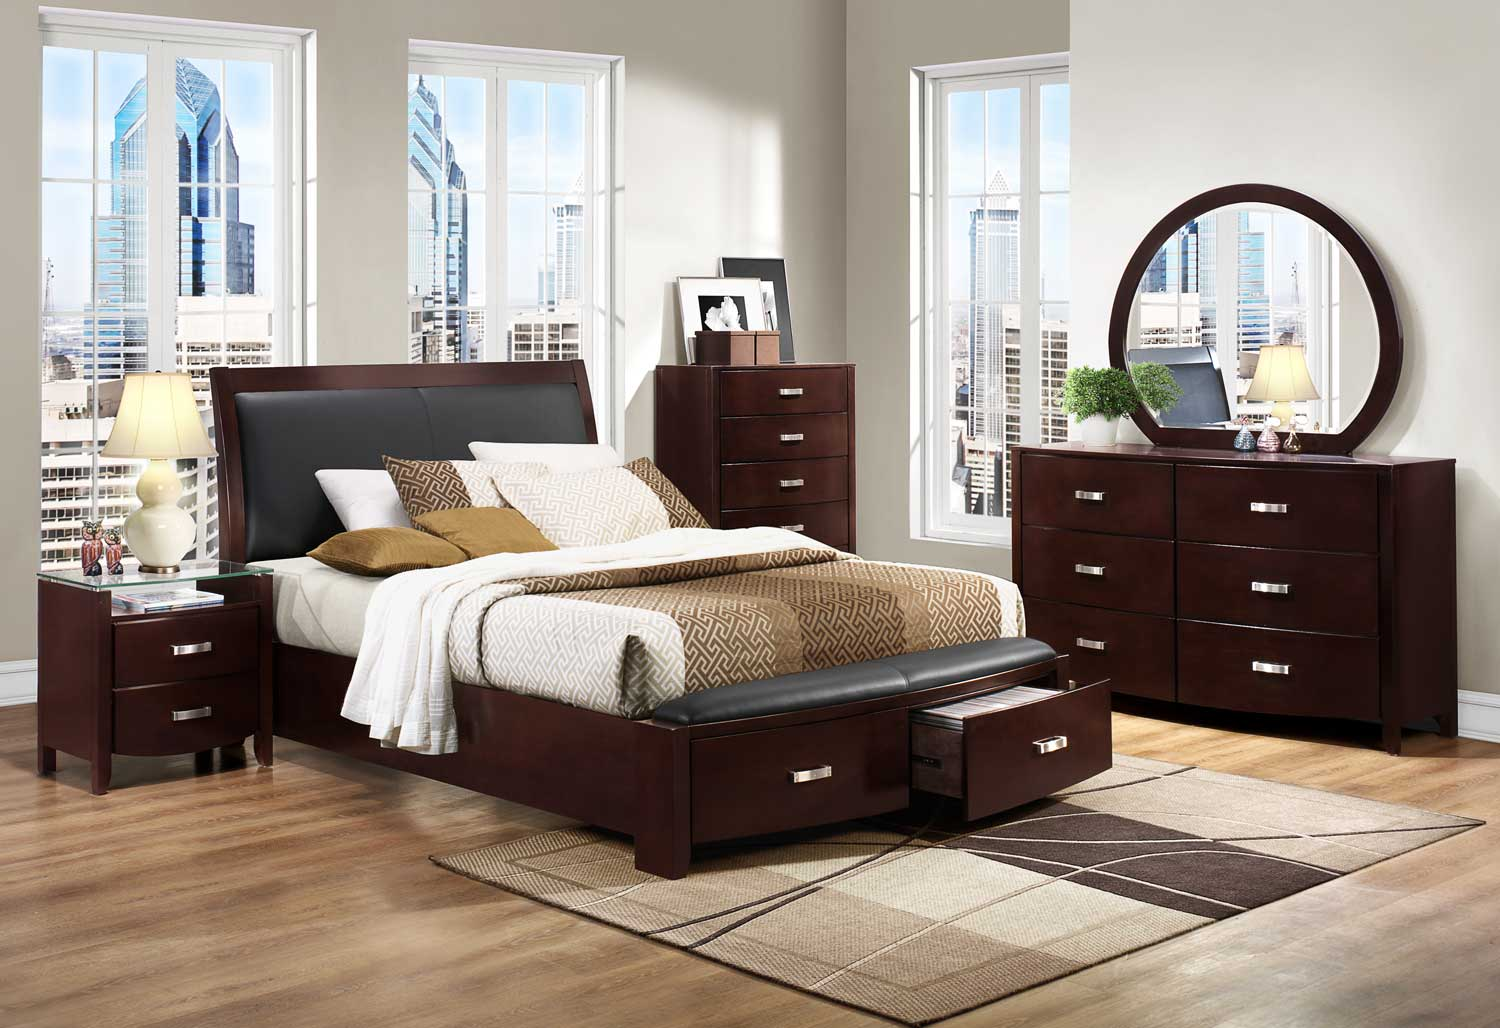 Homelegance lyric platform bedroom set dark espresso for Bedroom sets with mattress